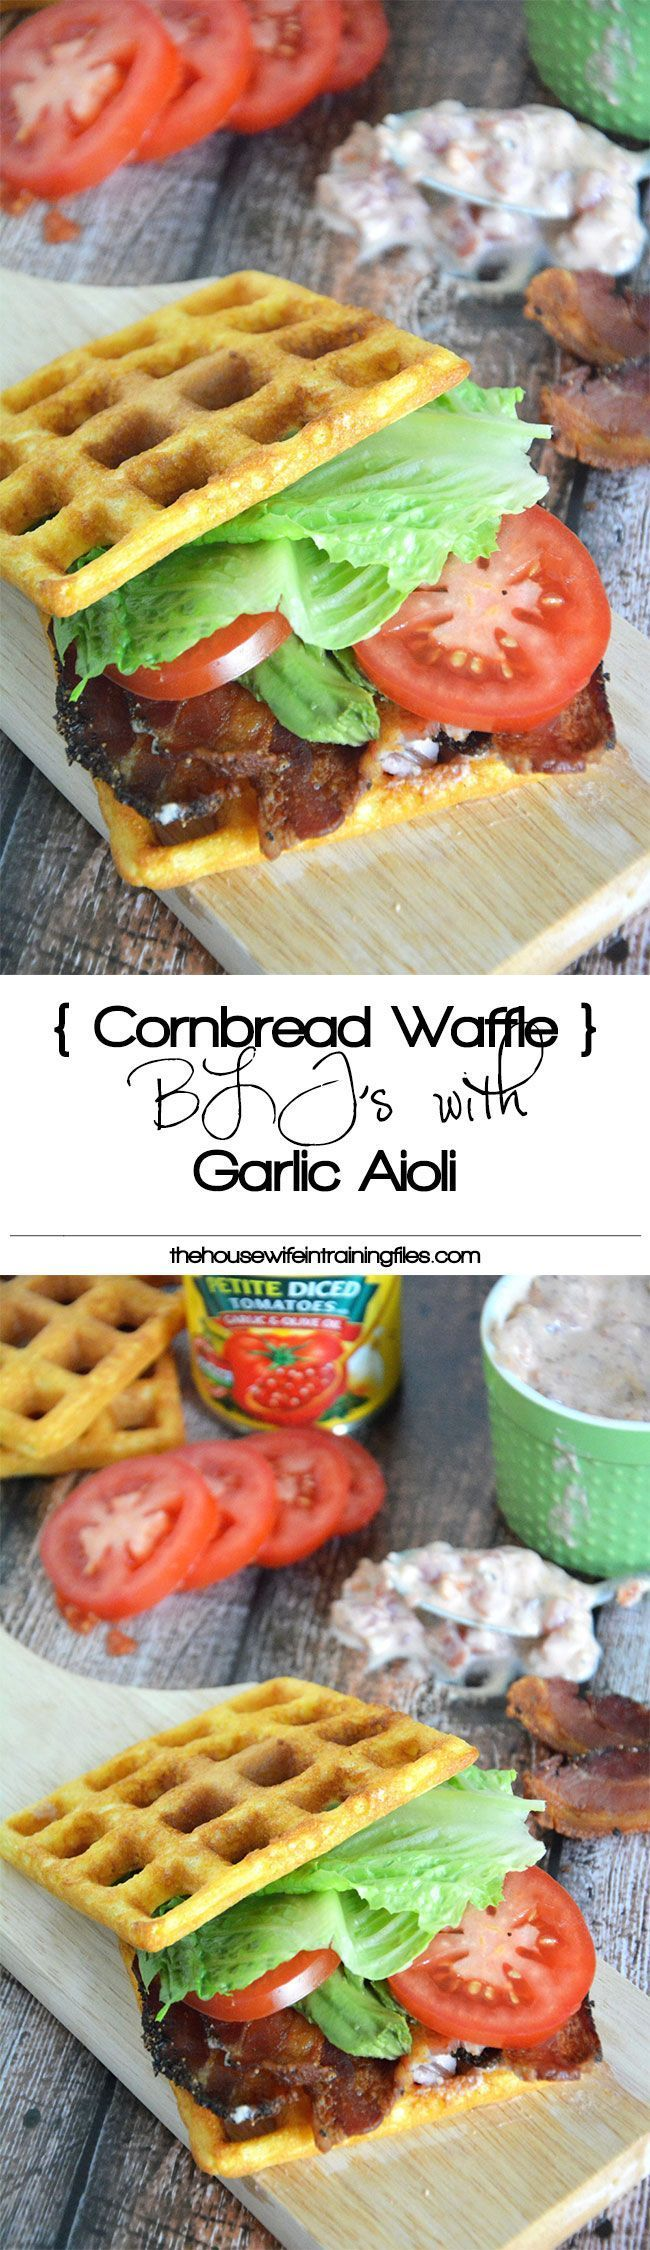 Best Waffle BLTs Recipe | Garlic Aioli, Gluten Free, Breakfast, Bacon, Sandwich, Healthy, Ultimate